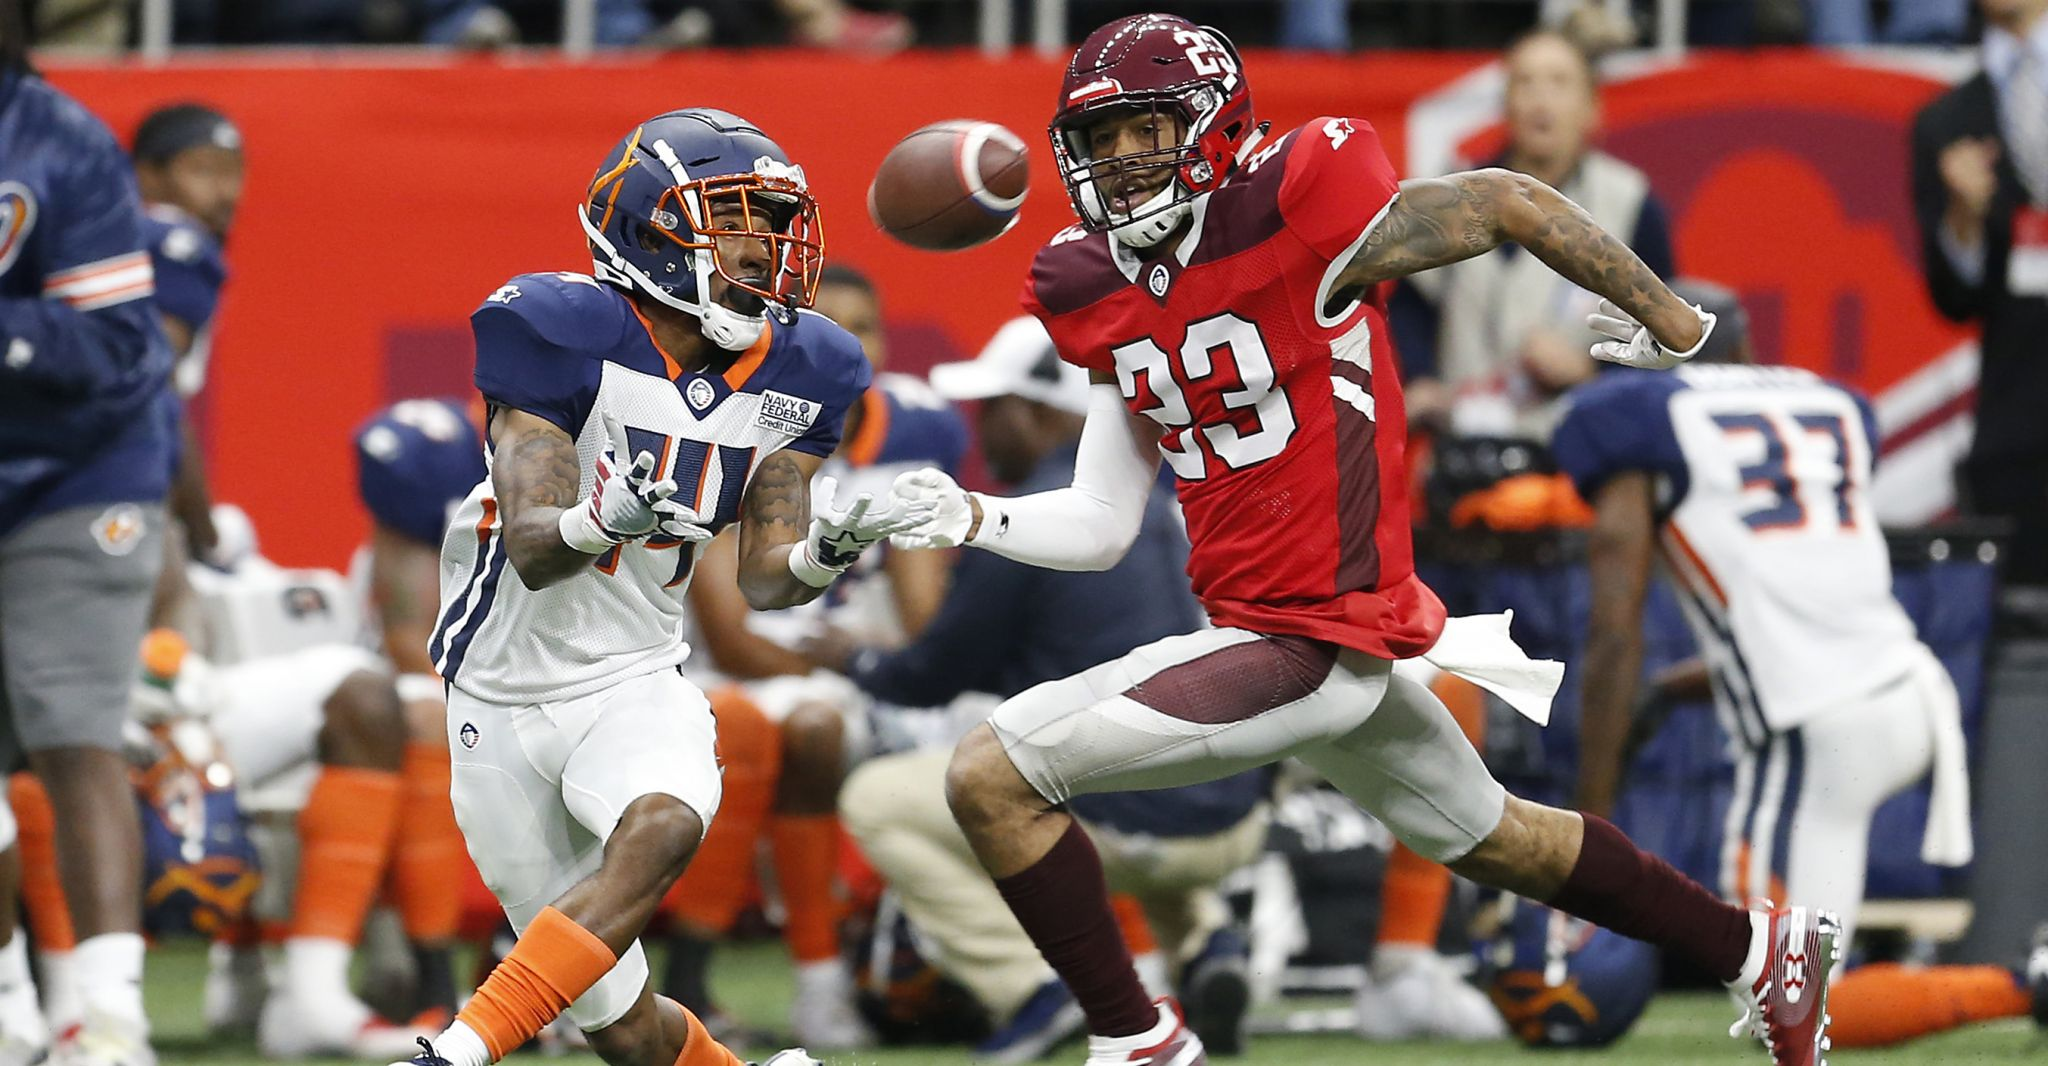 San Antonio Commanders lose after late rally by Orlando Apollos